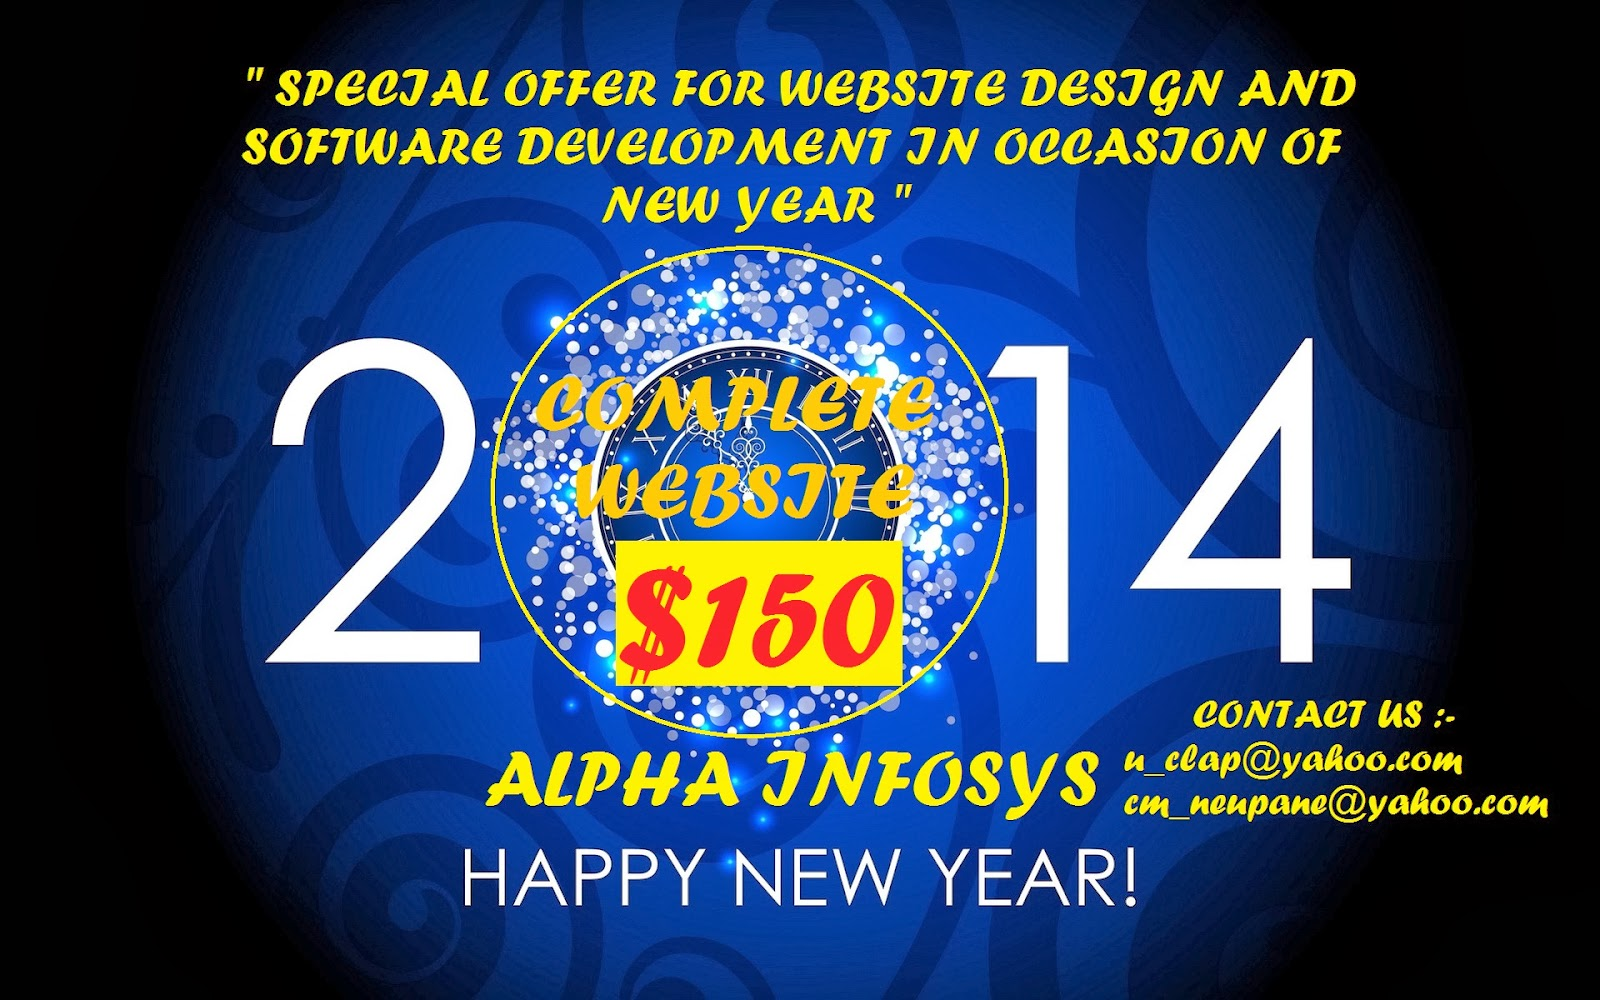 The Already Established Company ALPHA INFOSYS Is Providing Special Offer For Customer To Design Their Website On Occasion Of New Year 2014 In Lots